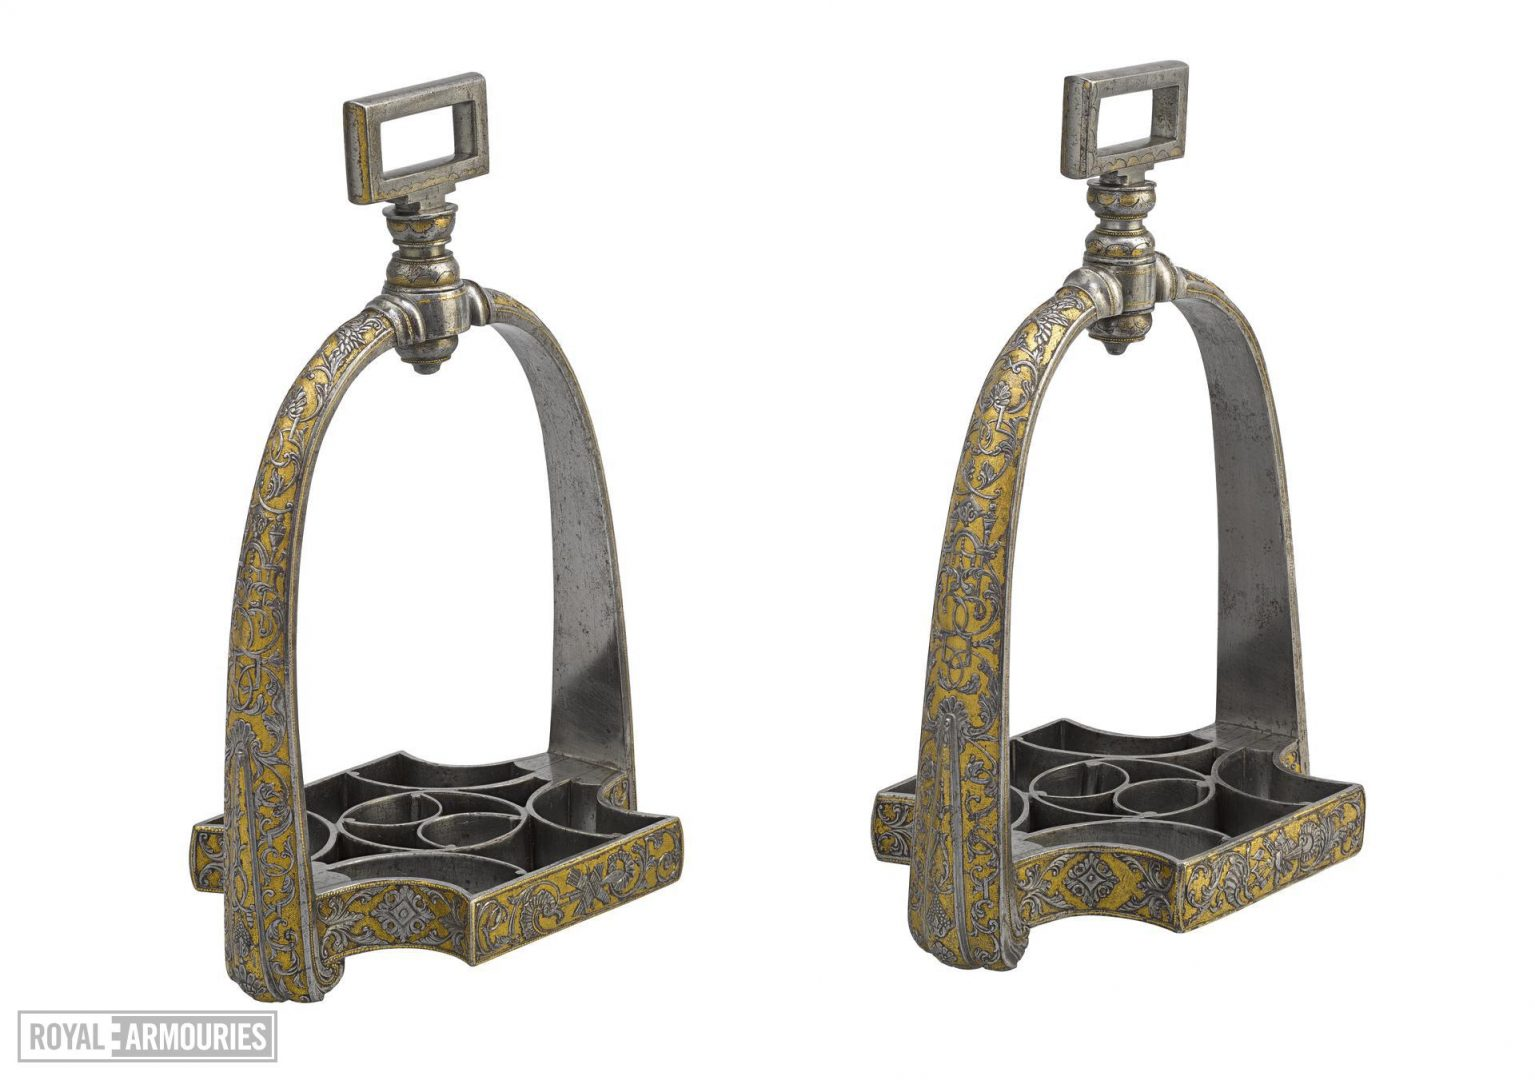 A pair of stirrups highly decorated in gold and silver